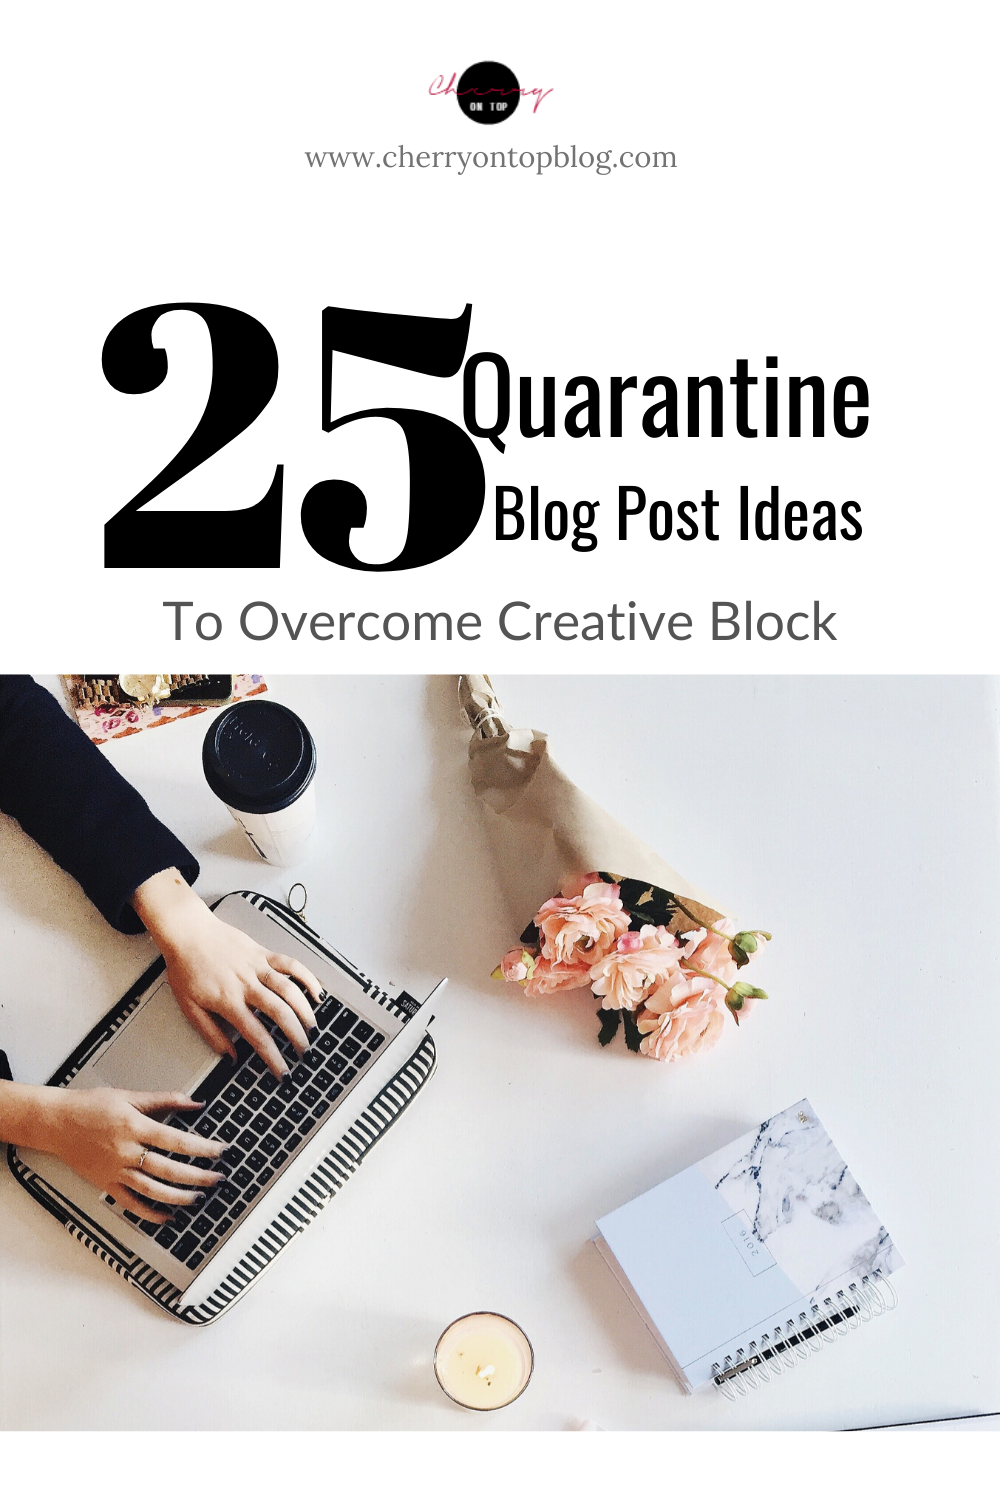 25 Quarantine Blog Post Ideas to Overcome Creative Block | Cherry On Top